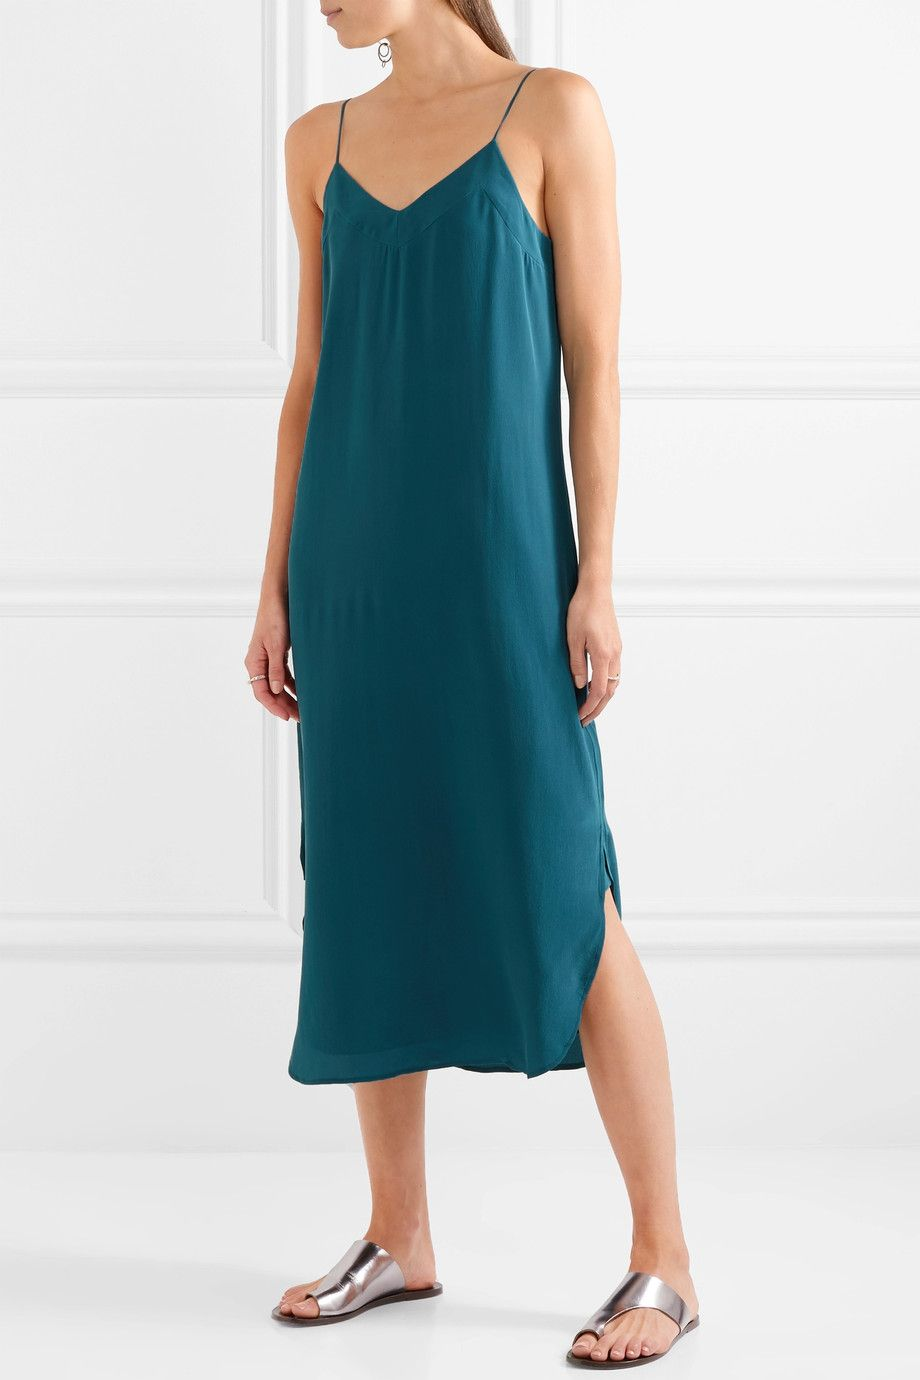 Dian Washed-silk Midi Dress - Teal Equipment Cheap Sale Visit Top Quality Cheap Price Shop For Sale Online Purchase Your Favorite EeWJHhM